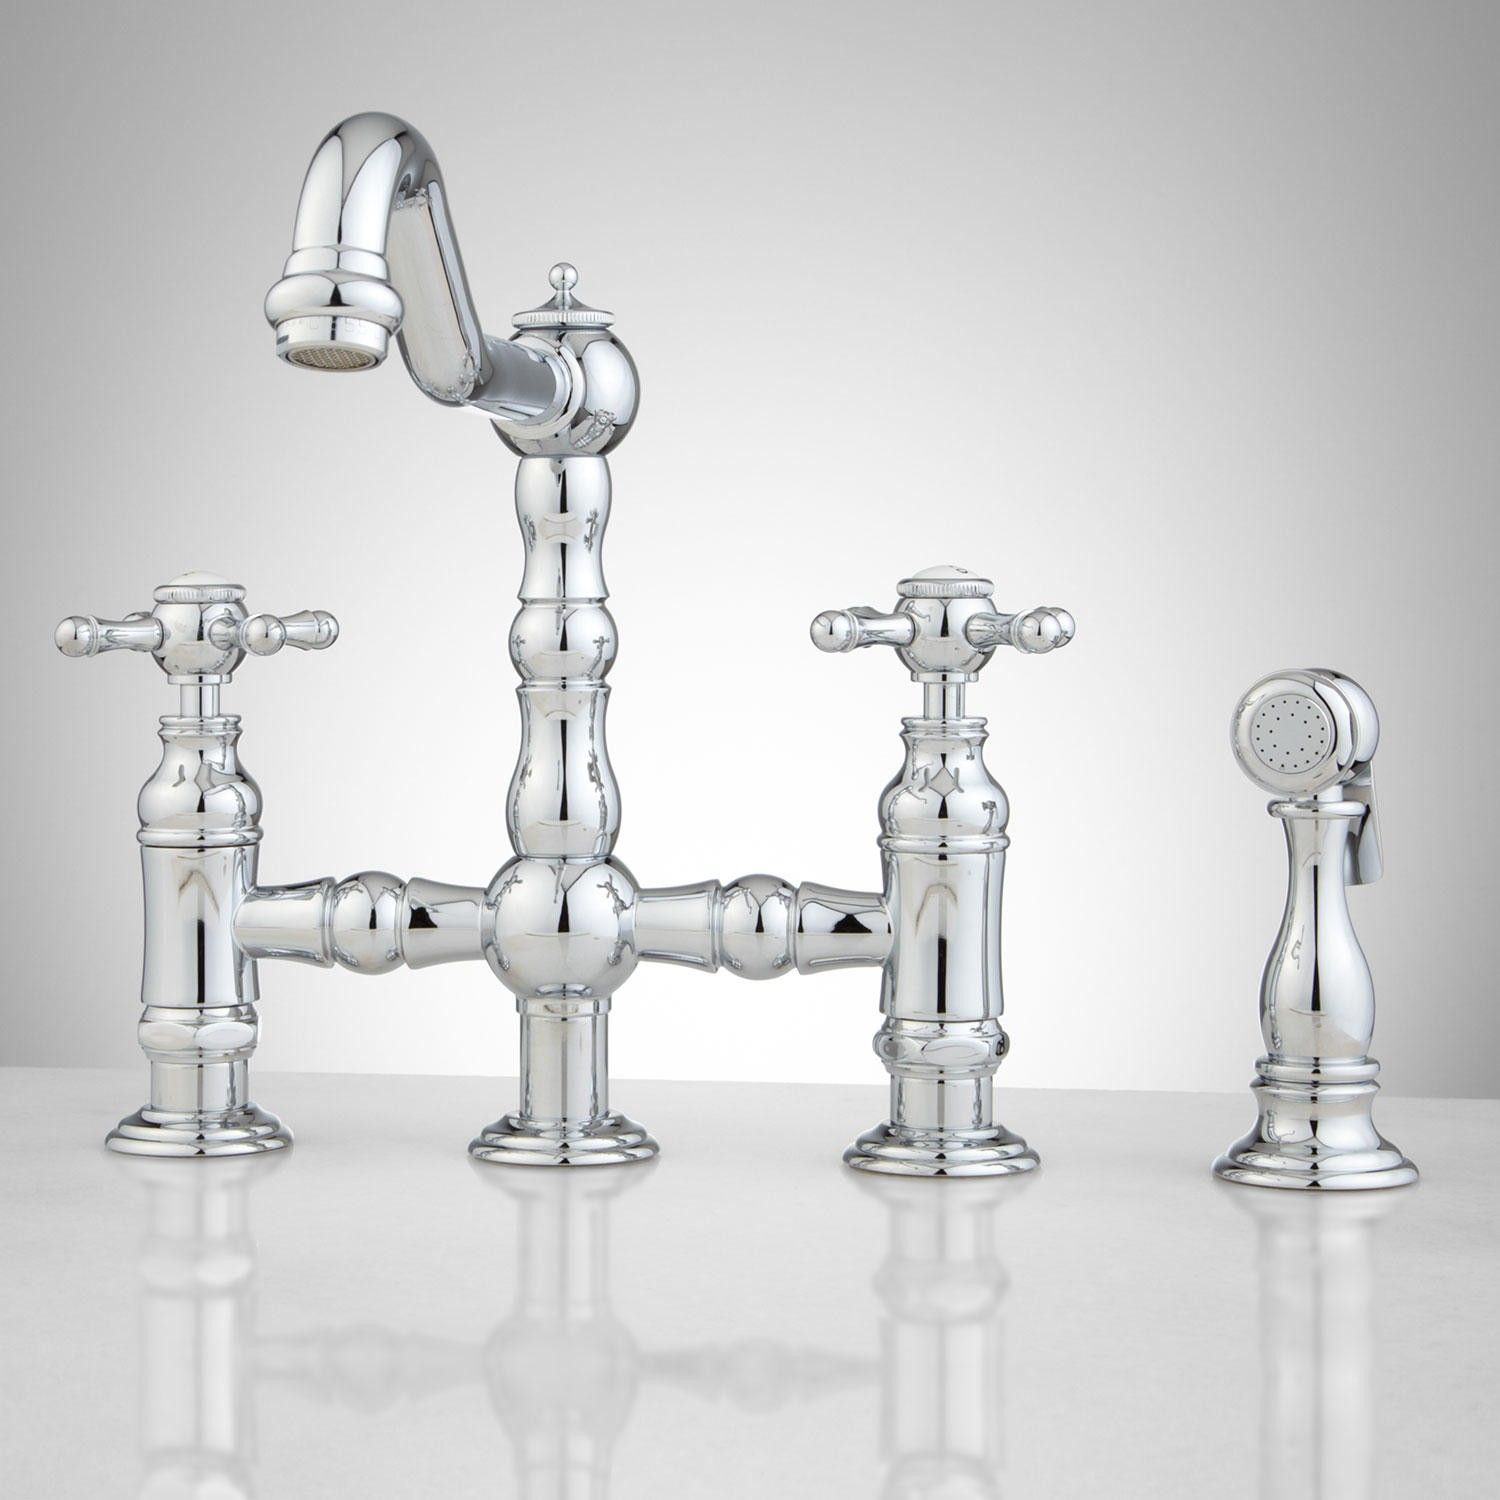 Bridge Faucets Kitchen Storage Sets For Delilah Deck Mount Faucet With Side Spray Cross Handles In